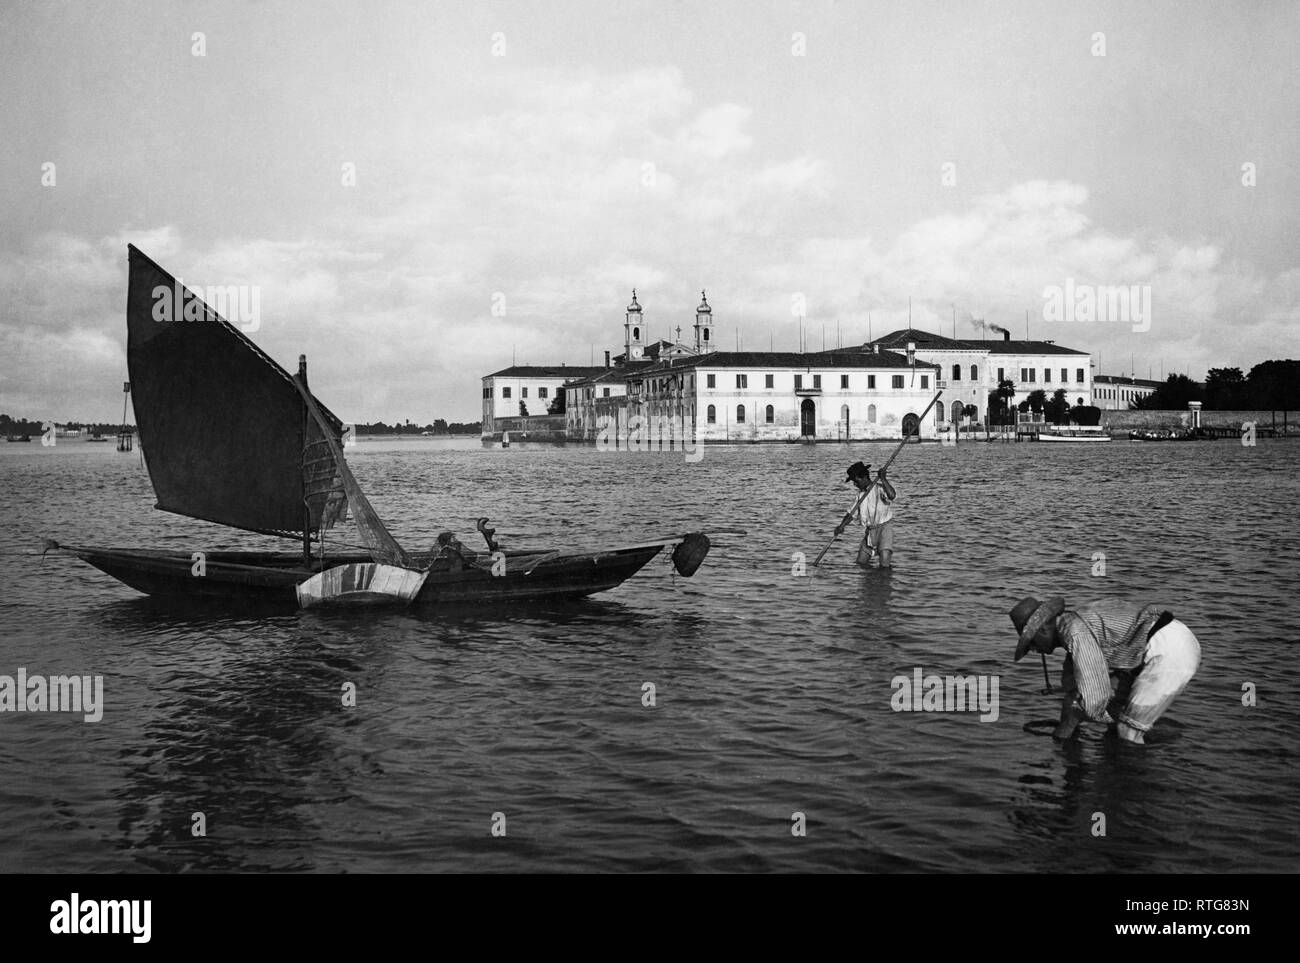 italy, veneto, isola di san servolo, 1910-20 Stock Photo